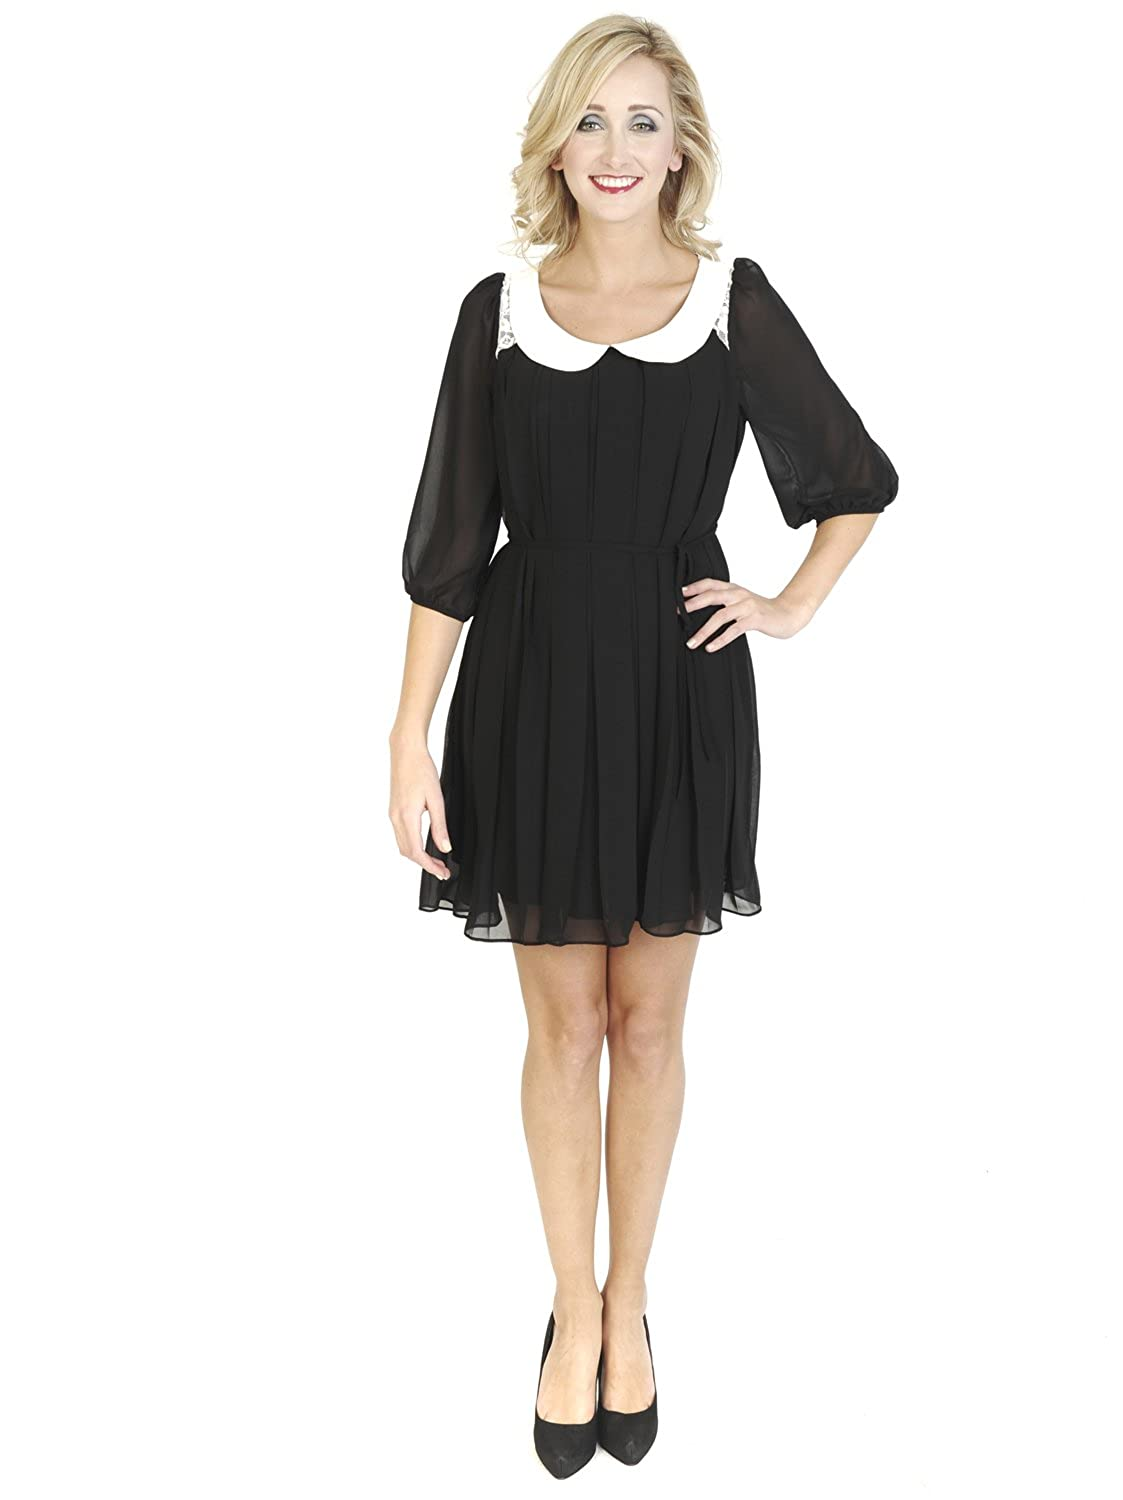 Black Bielle Knee Length Midi 3/4 Sleeve Simple Collared Lace Back Shift Day Dress